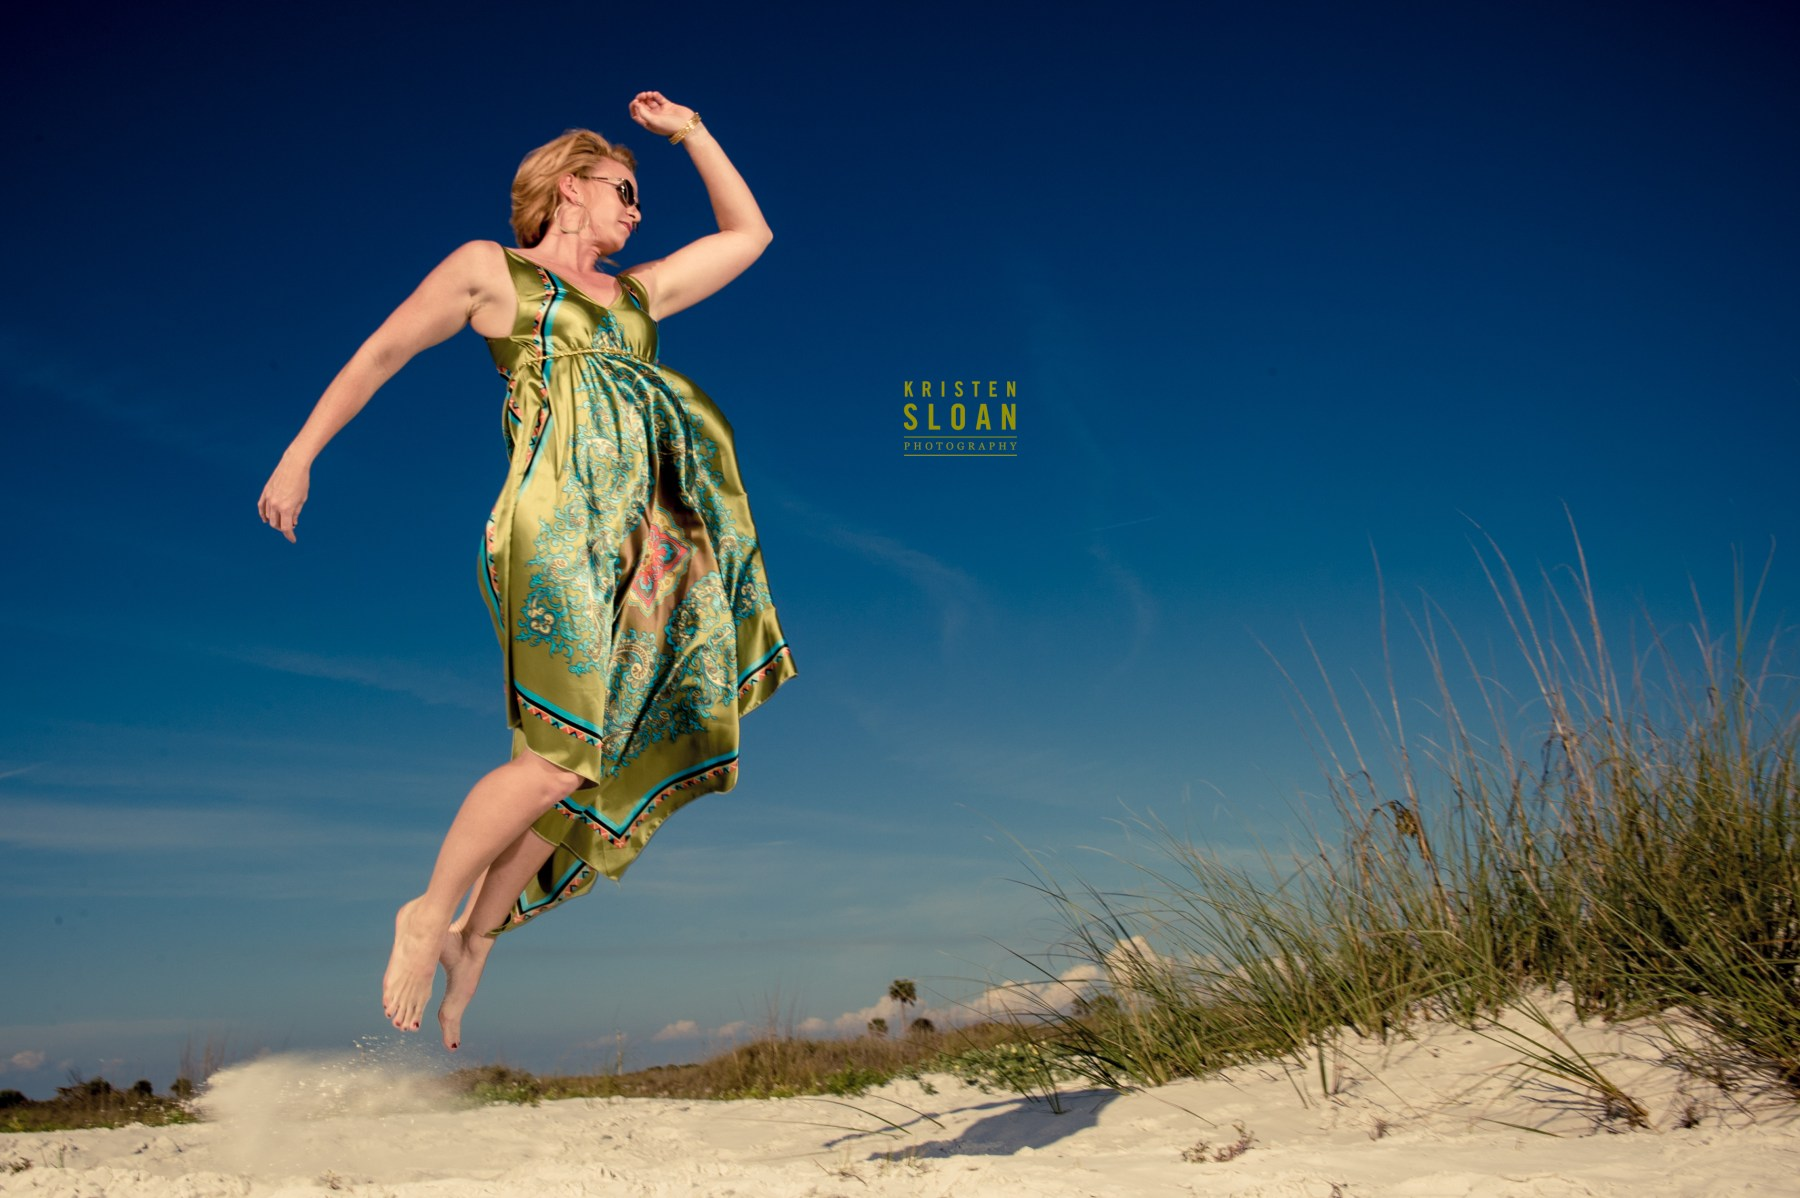 Saint Petersburg Florida Photographer Kristen Sloan